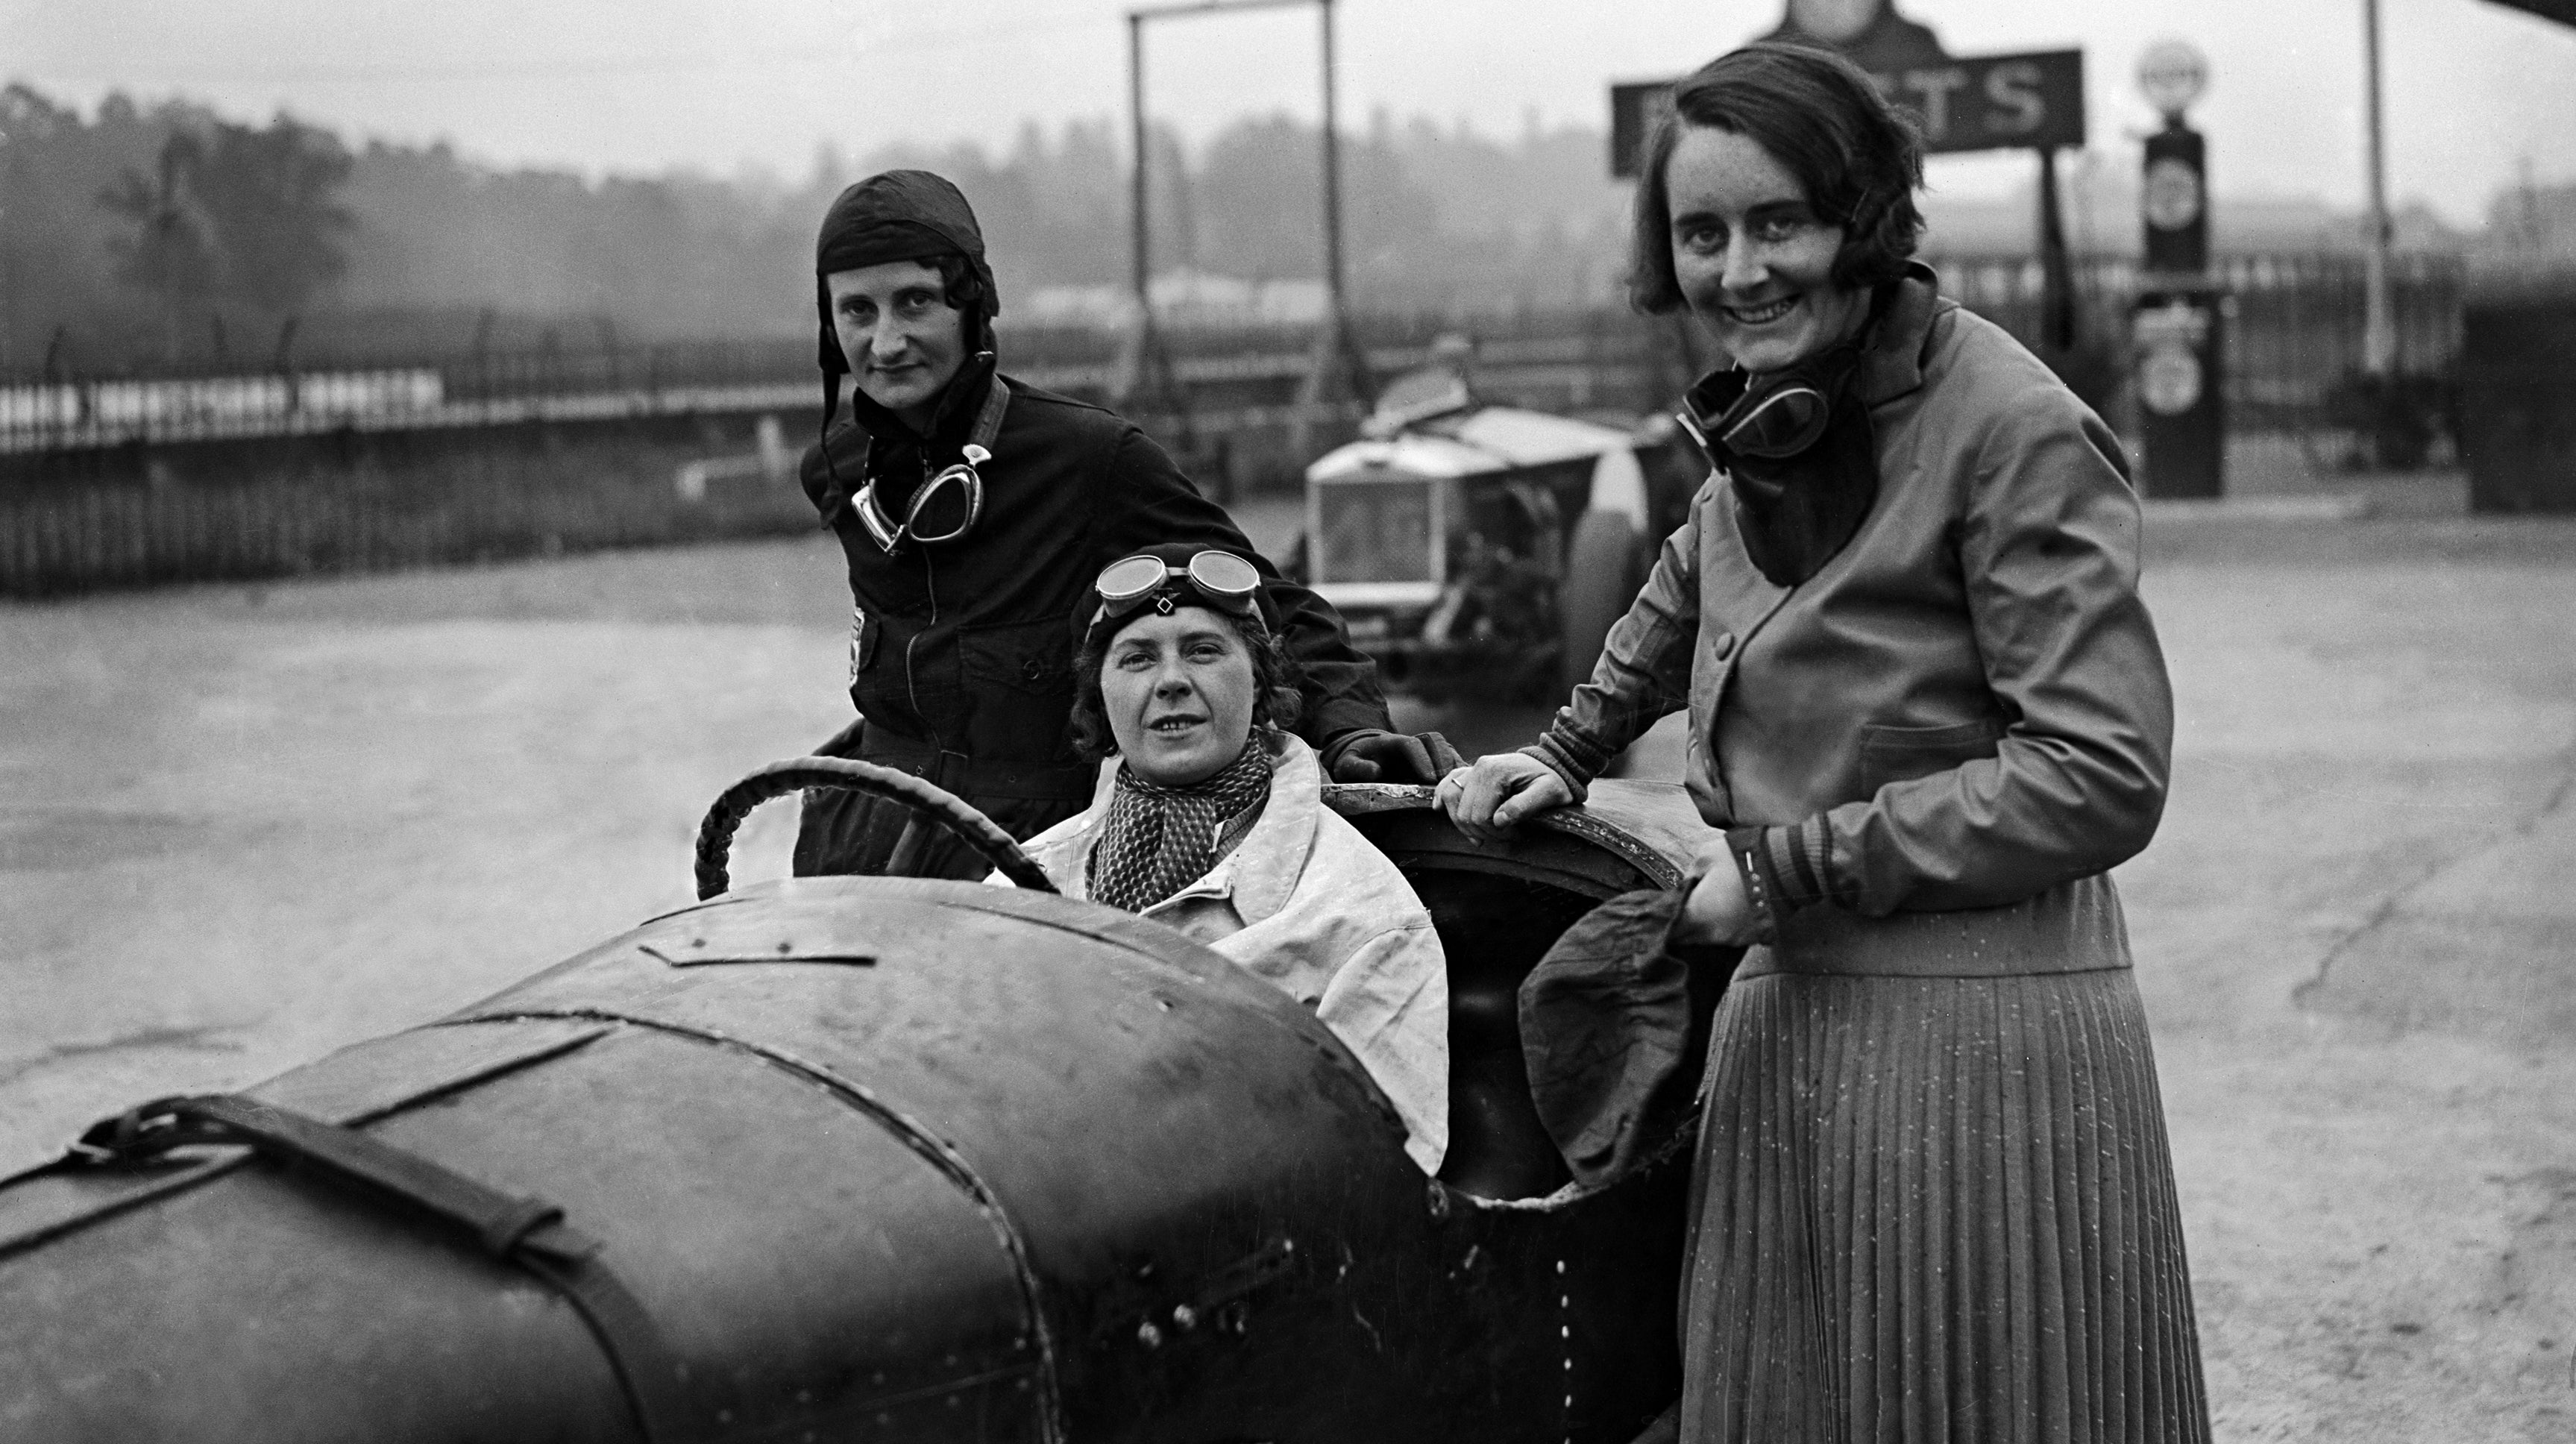 Elsie Wisdom Proved That Women Could Have A Family And Kick Arse At Racing, Too